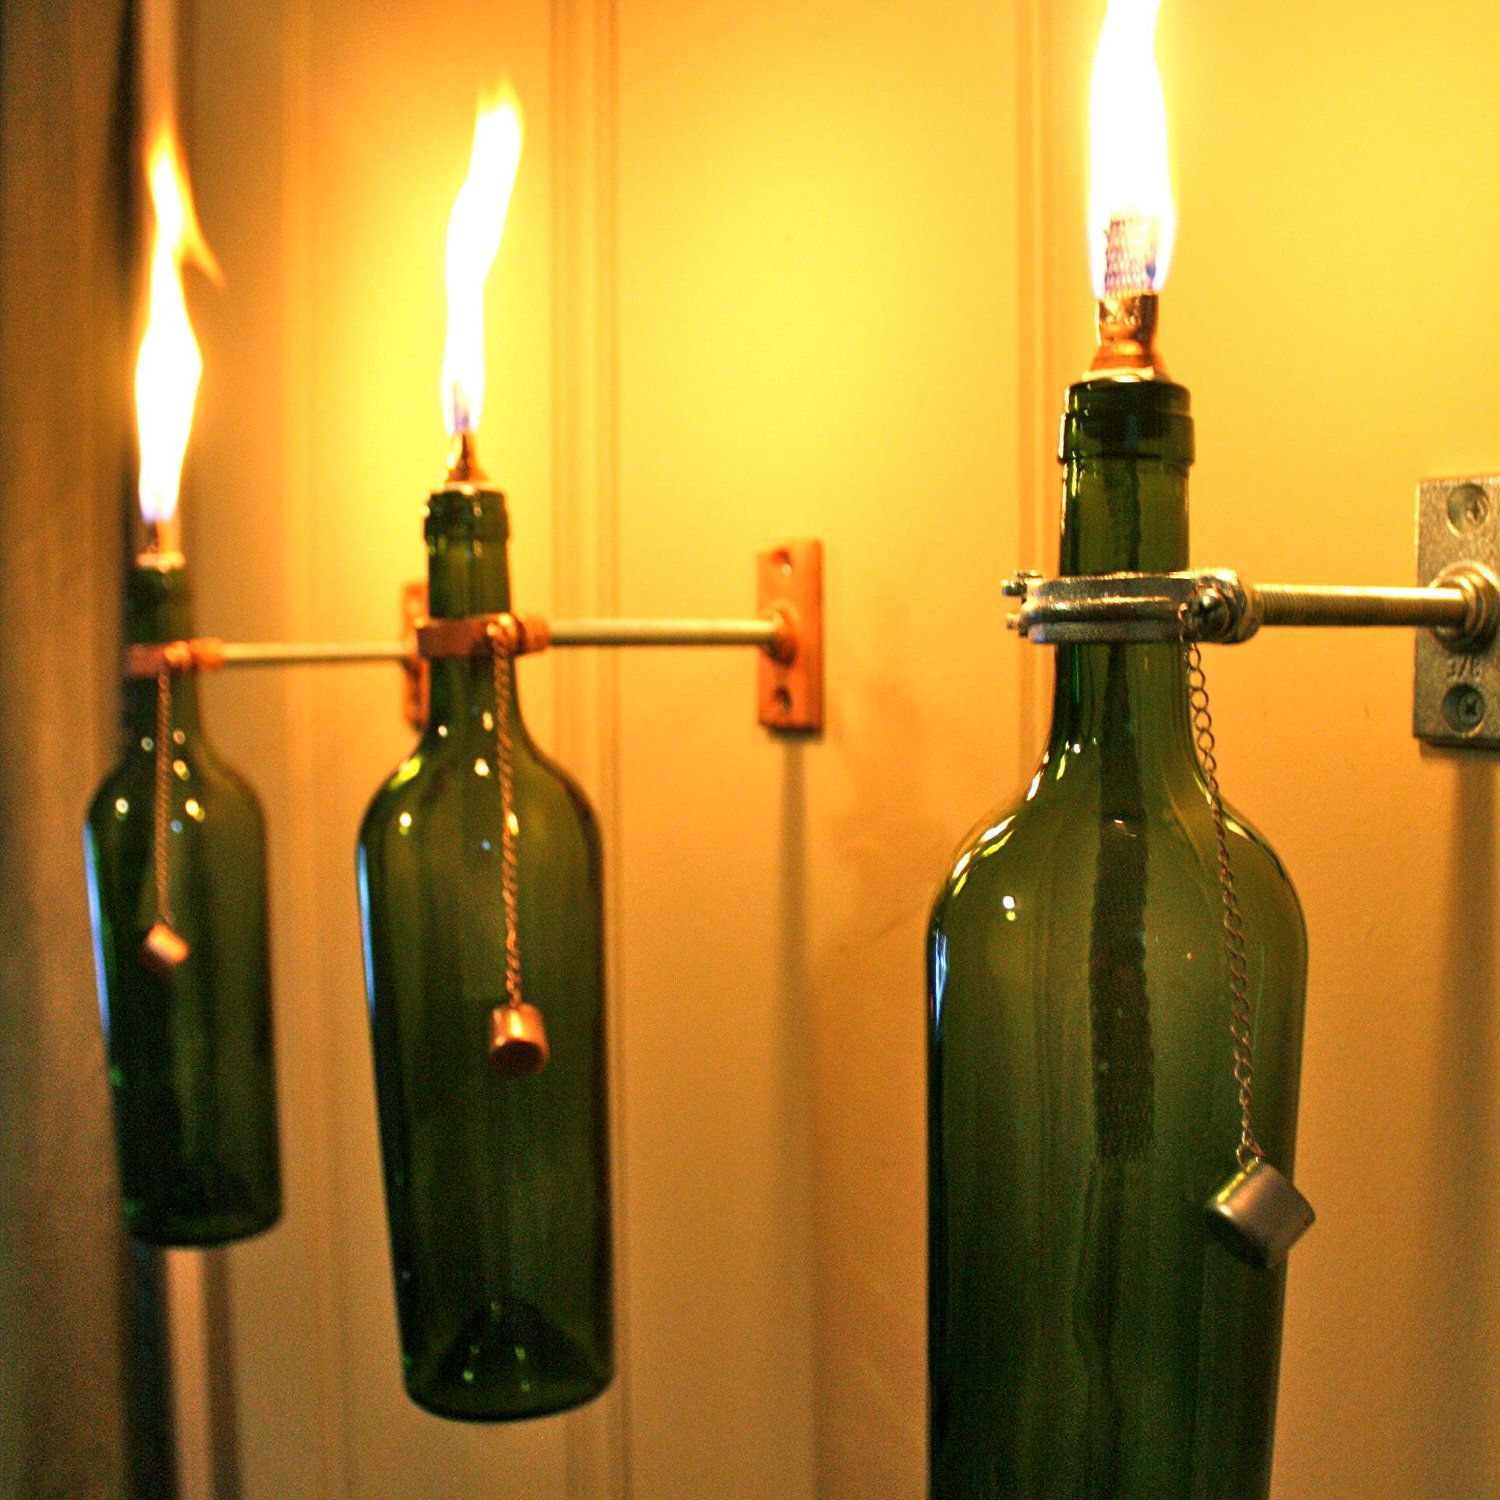 2 Wine Bottle Oil Lamps Indoor Hanging Lantern Wall Sconce